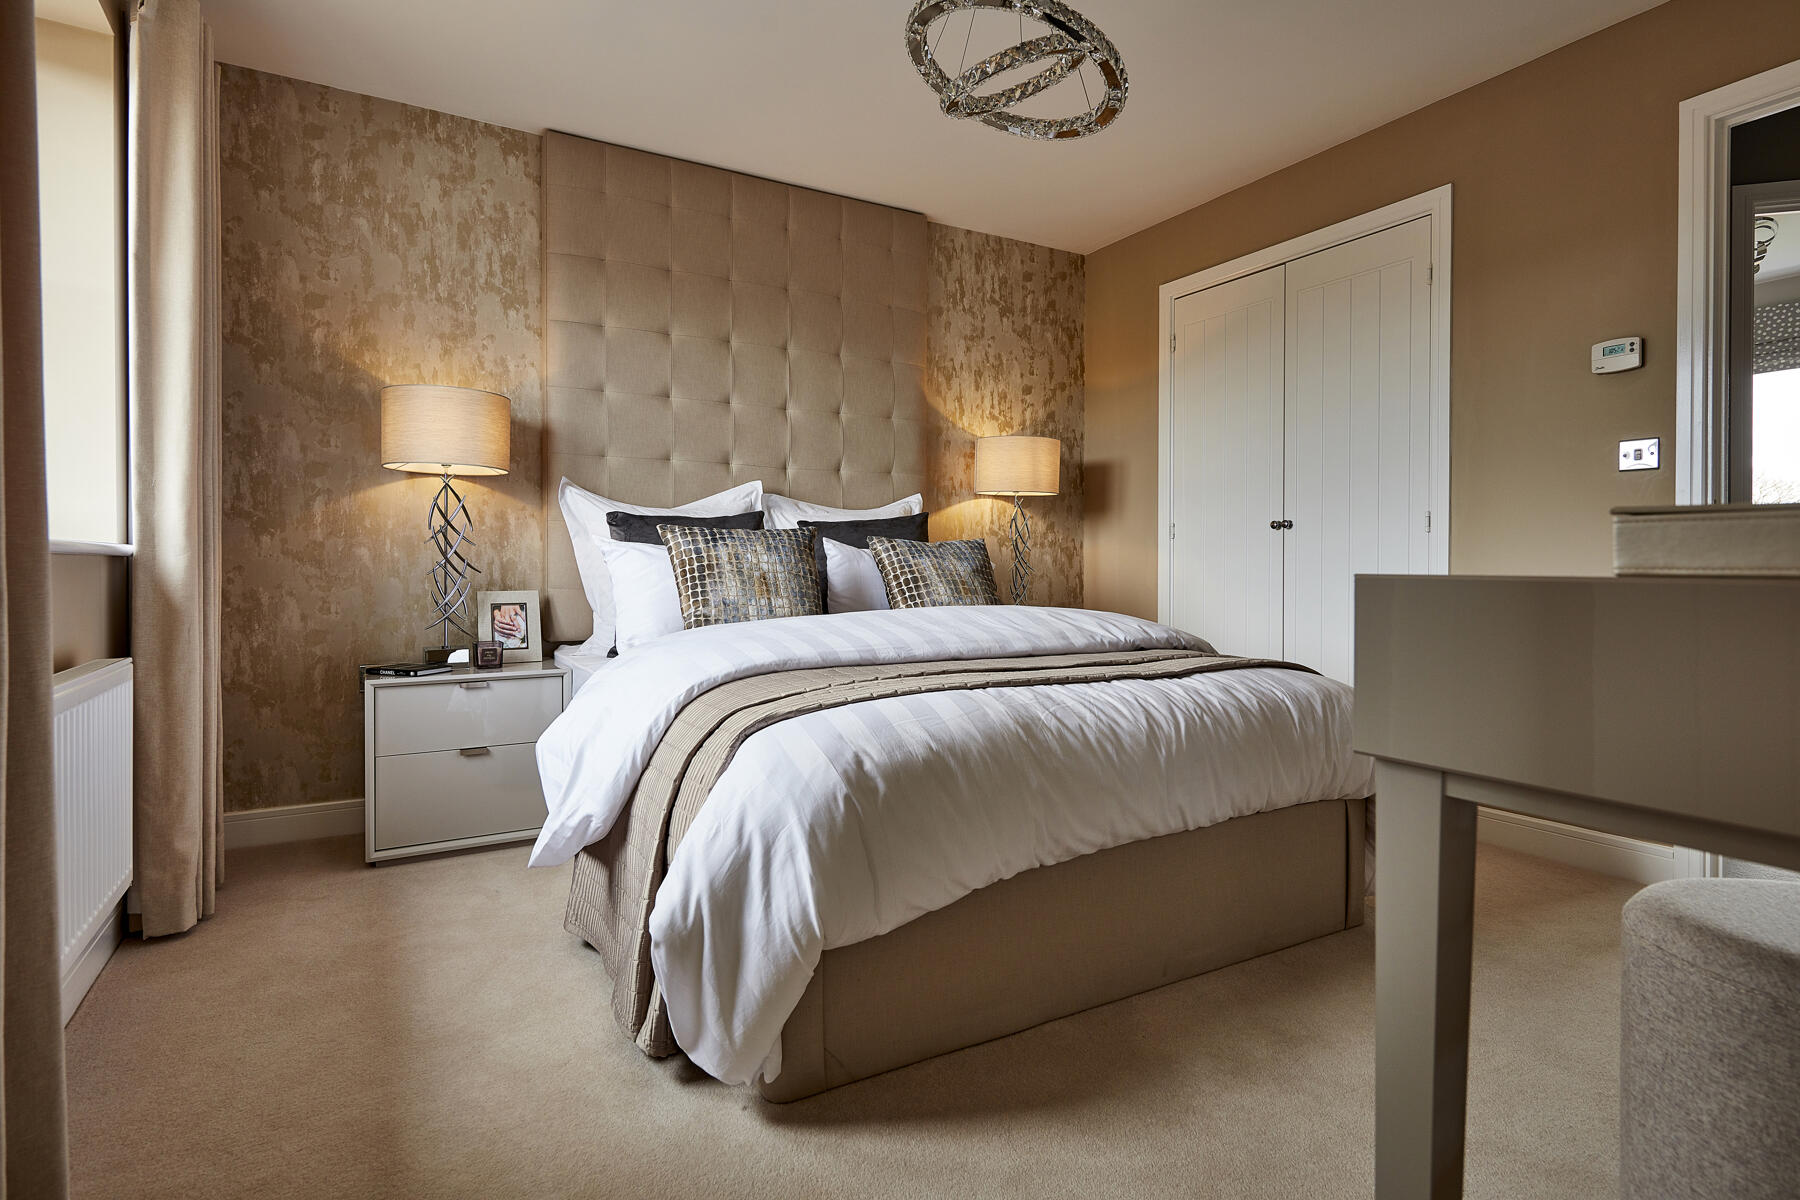 TW OX Castle Grange_Banbury_NA43_Lanford_Bedroom (1)